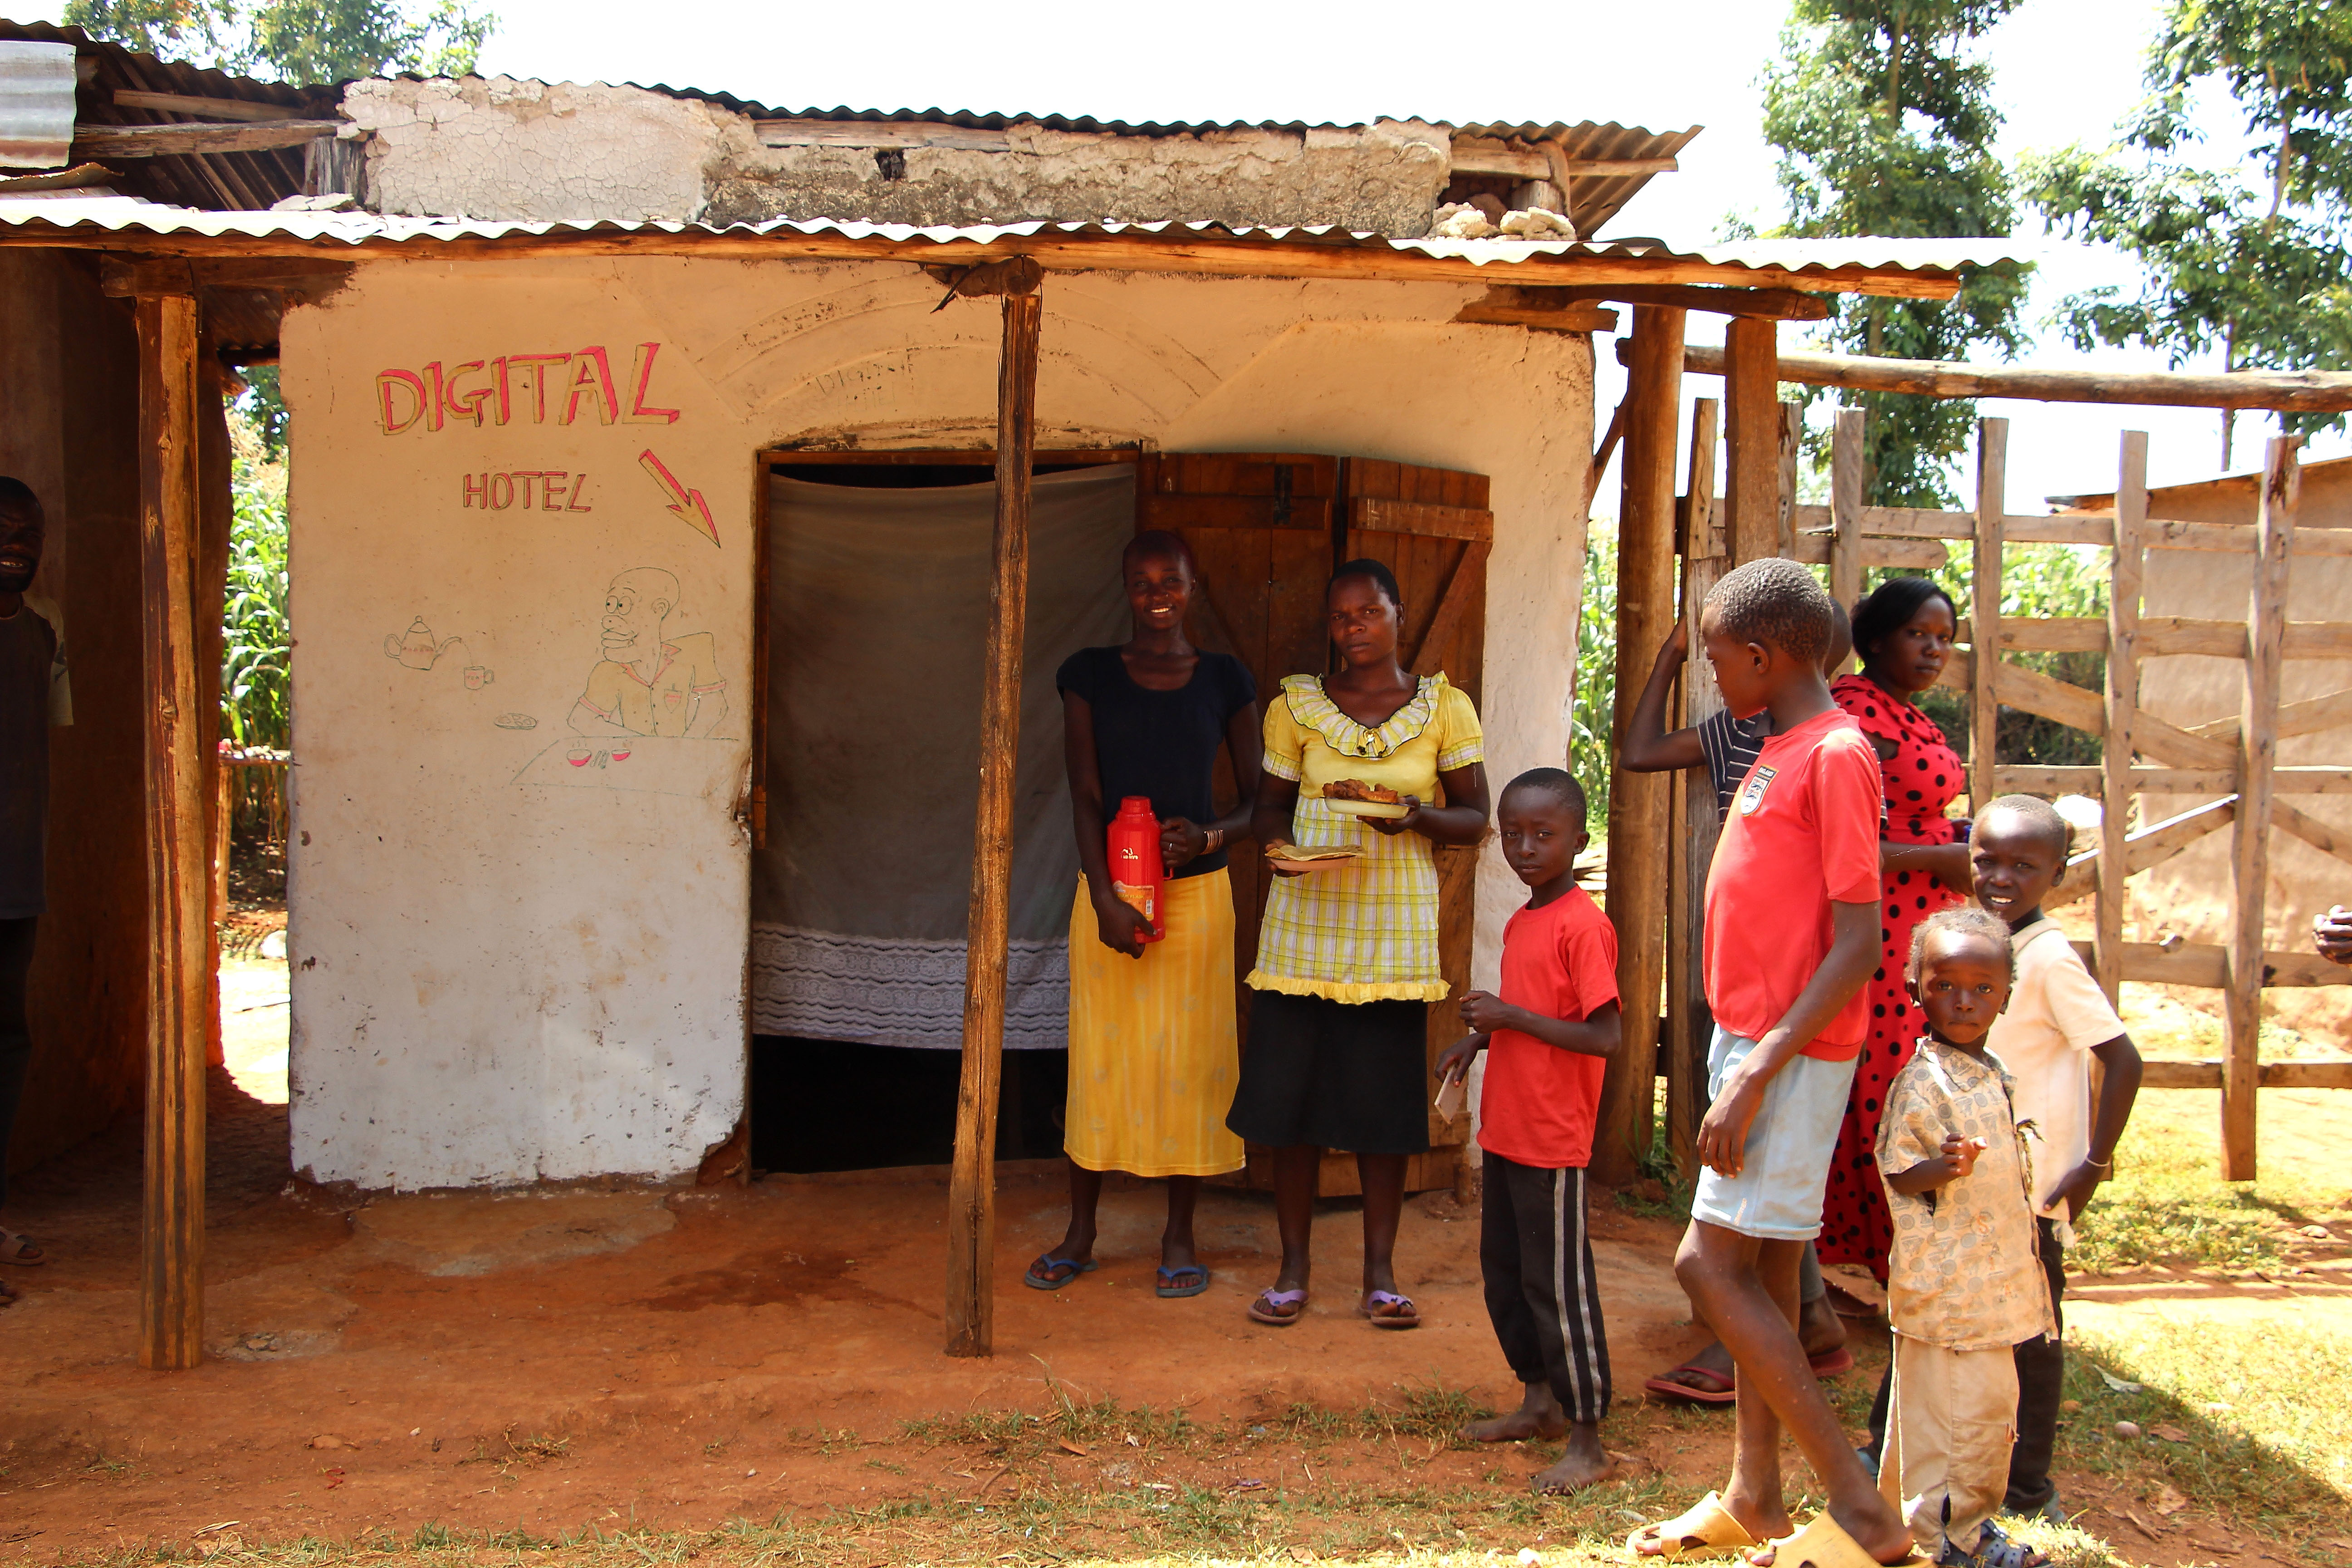 Village Enterprise business owners Esther Nekesa and Milicent Kavosa, their families, and their restaurant